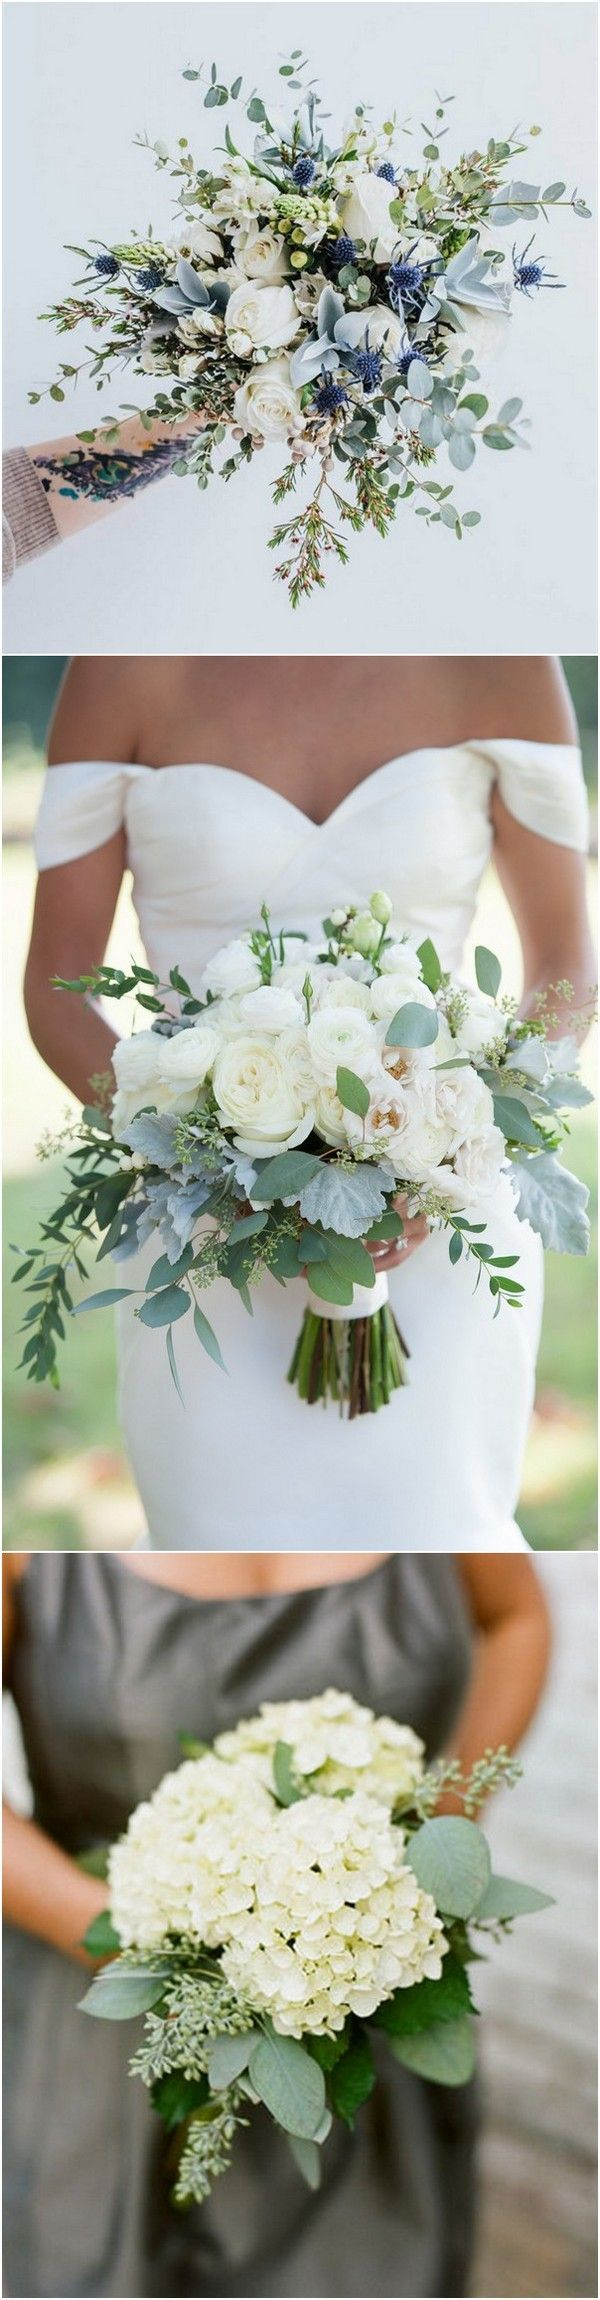 White green and blue wedding bouquet ideas bridal bouquets